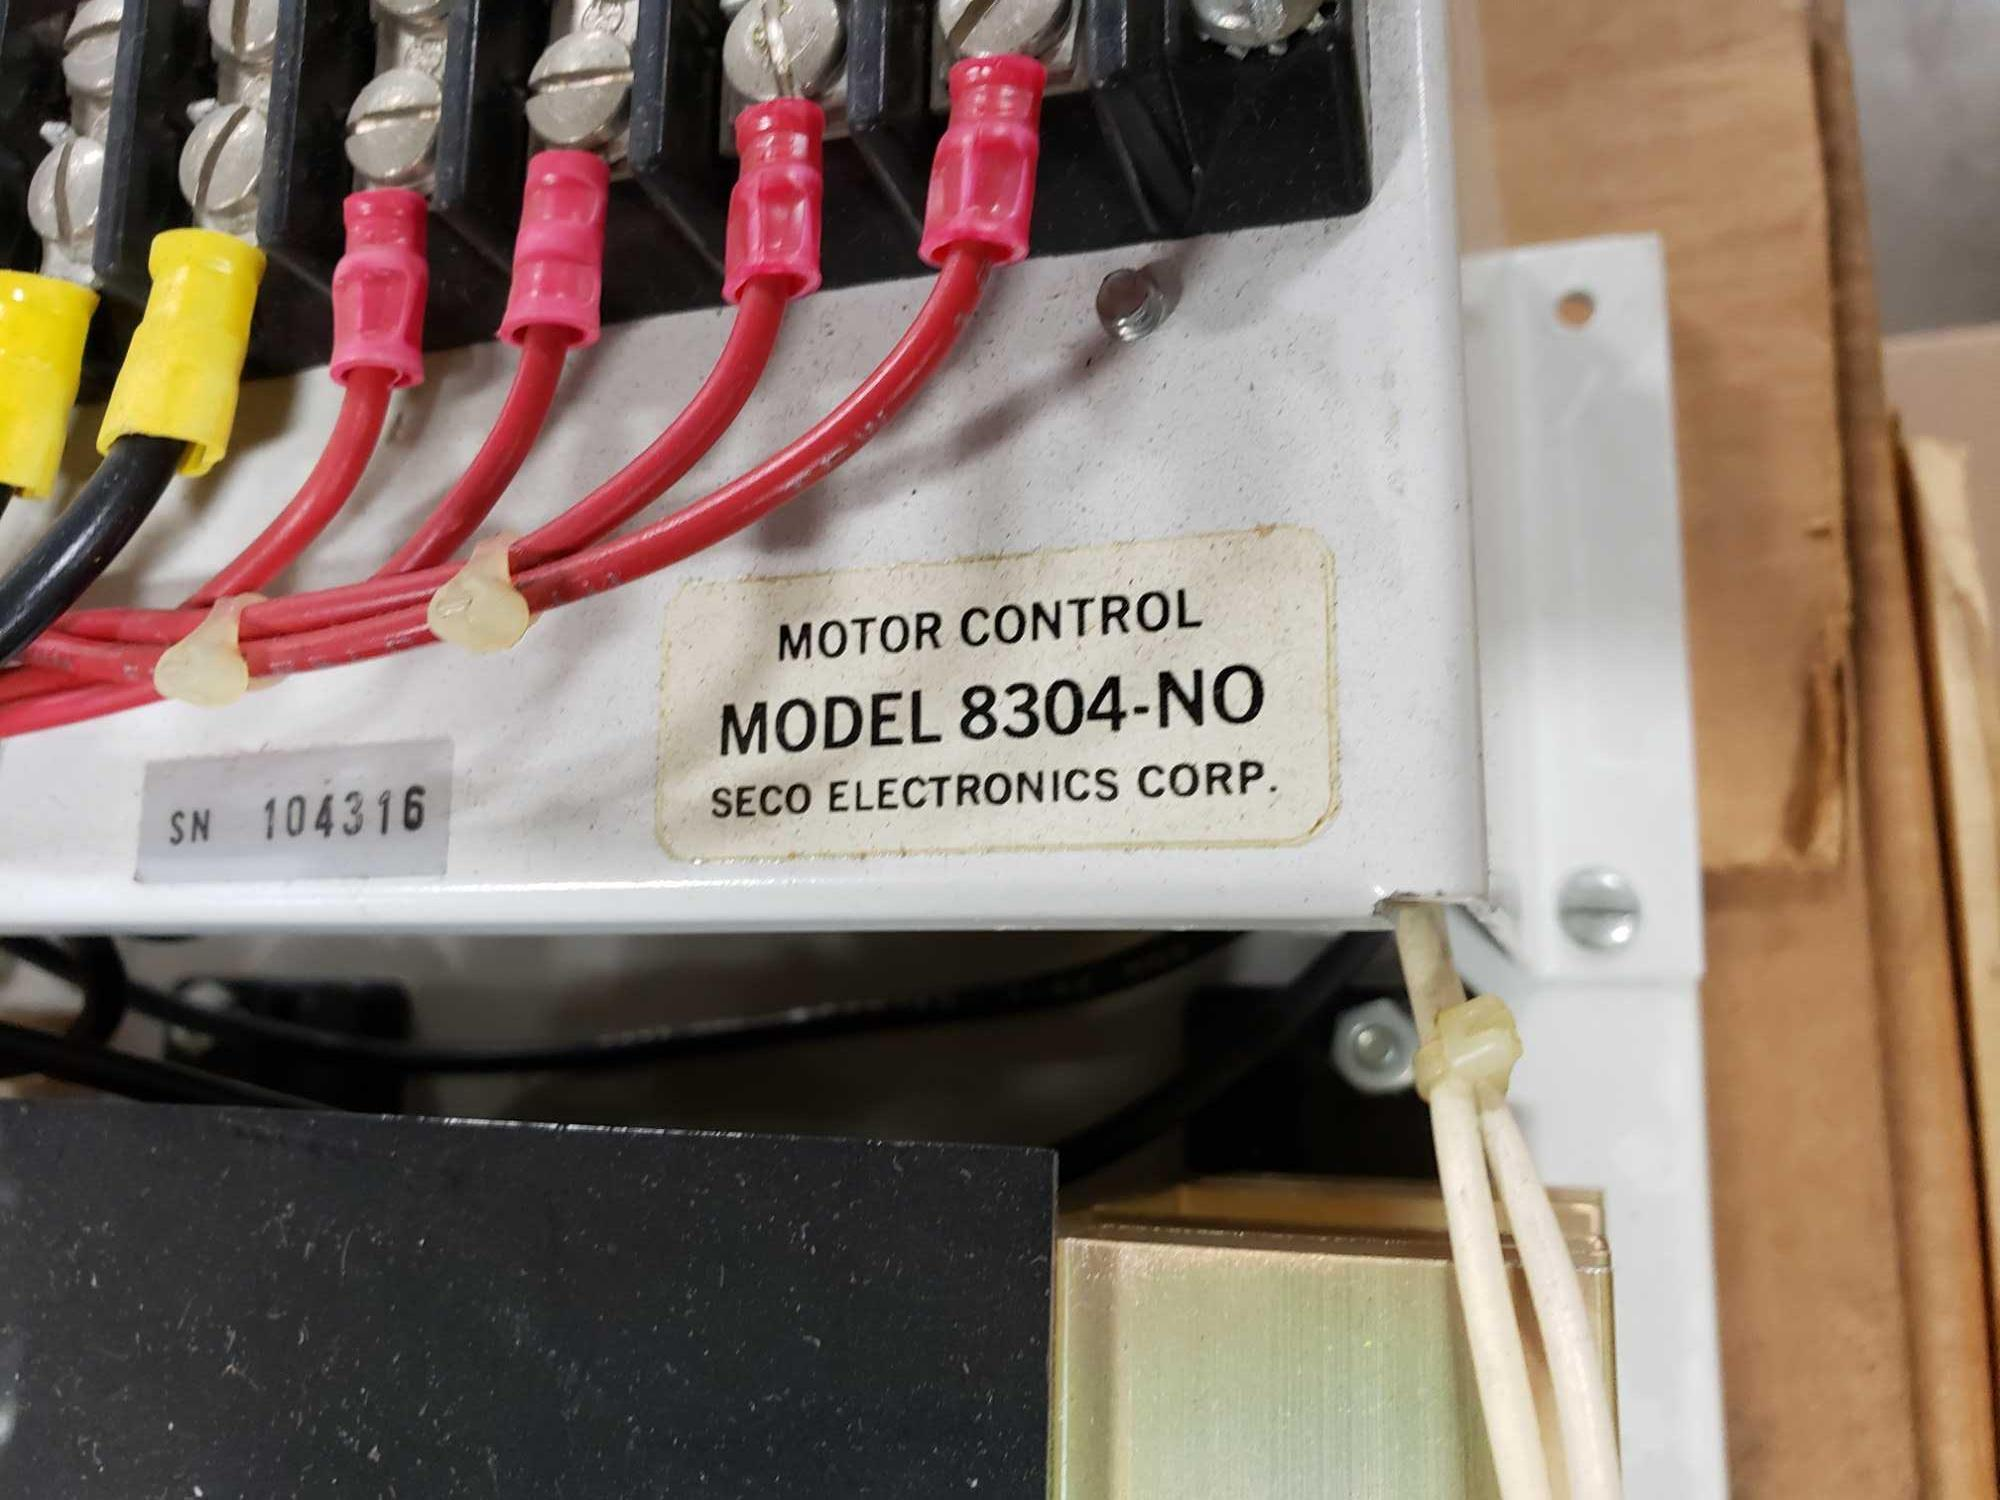 Seco Electronics model 8300 SCR motor control part 8304-N0.. New in box. - Image 2 of 3